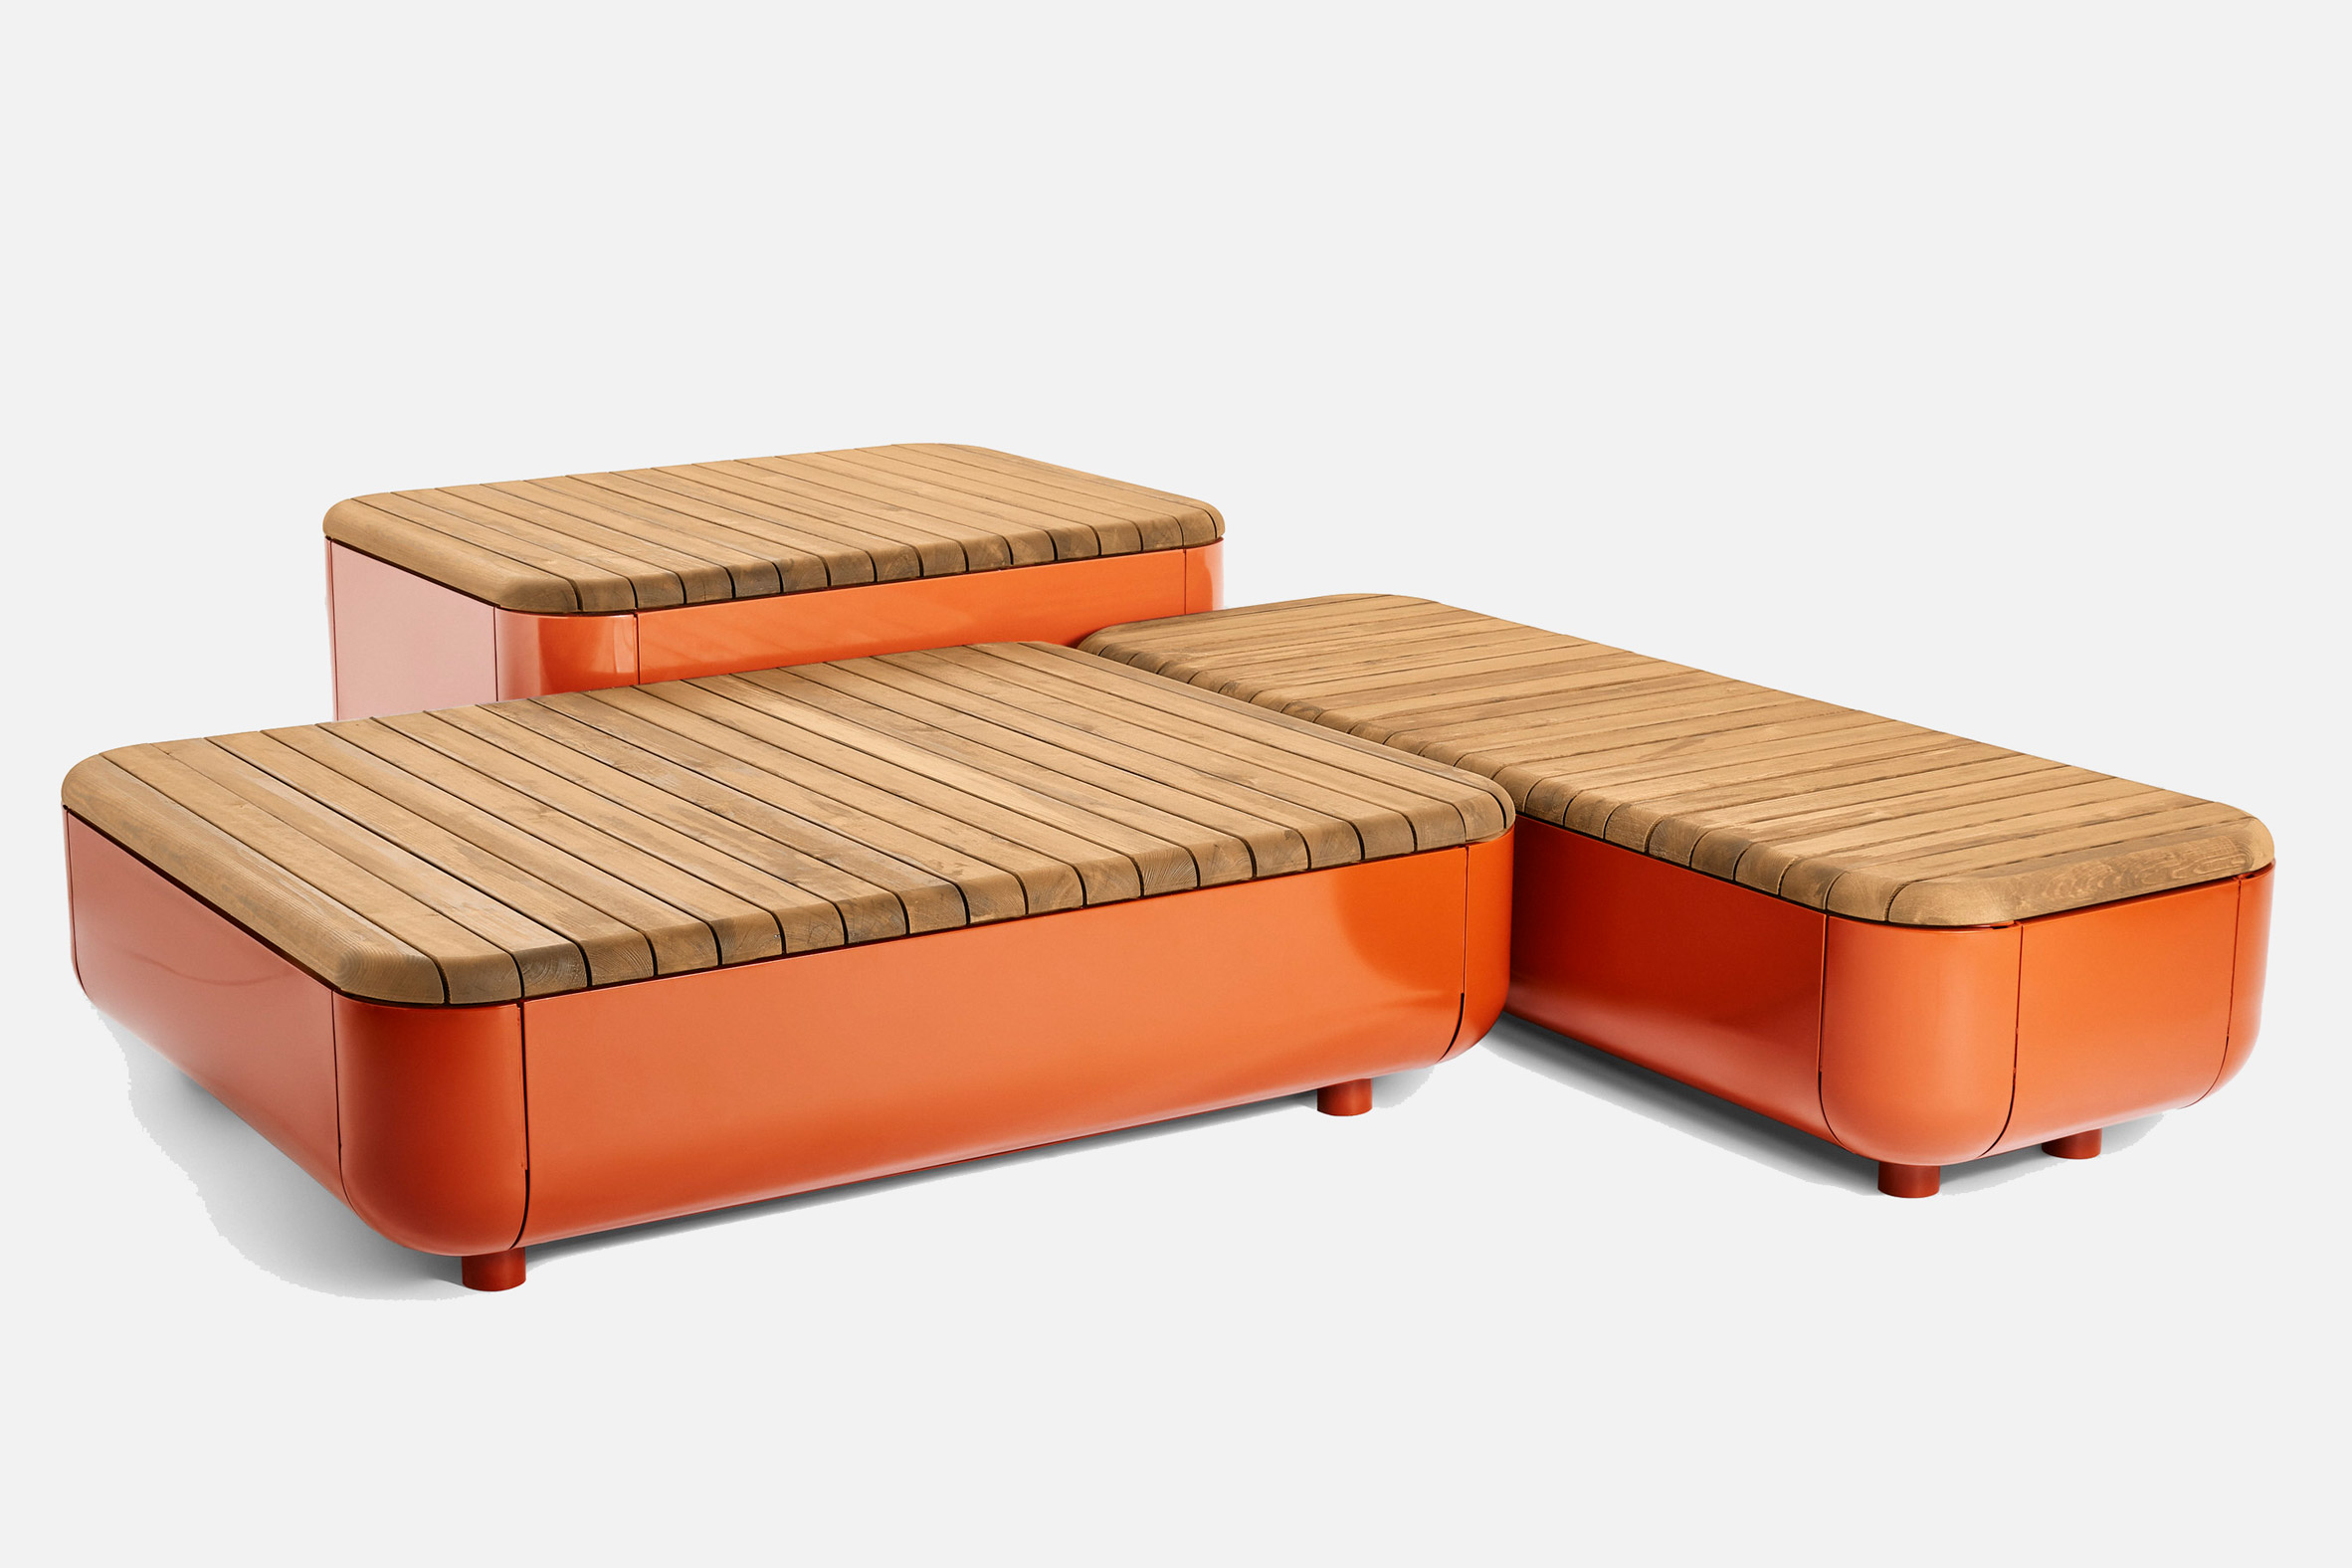 The Stones modular bench system